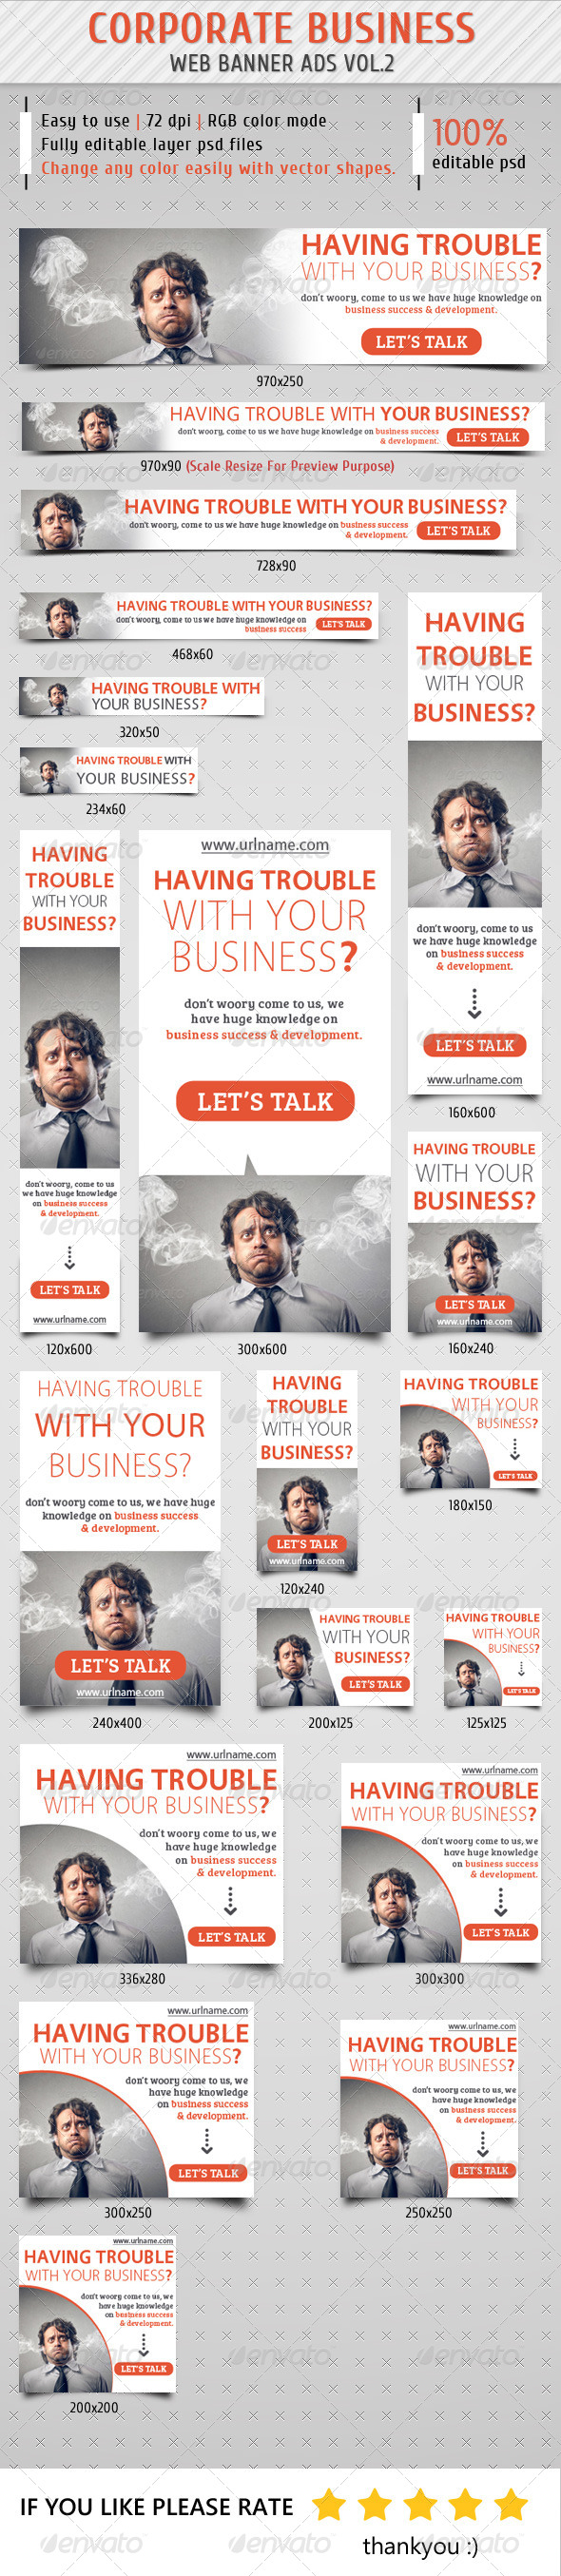 Corporate Business Banner Ads Vol.2